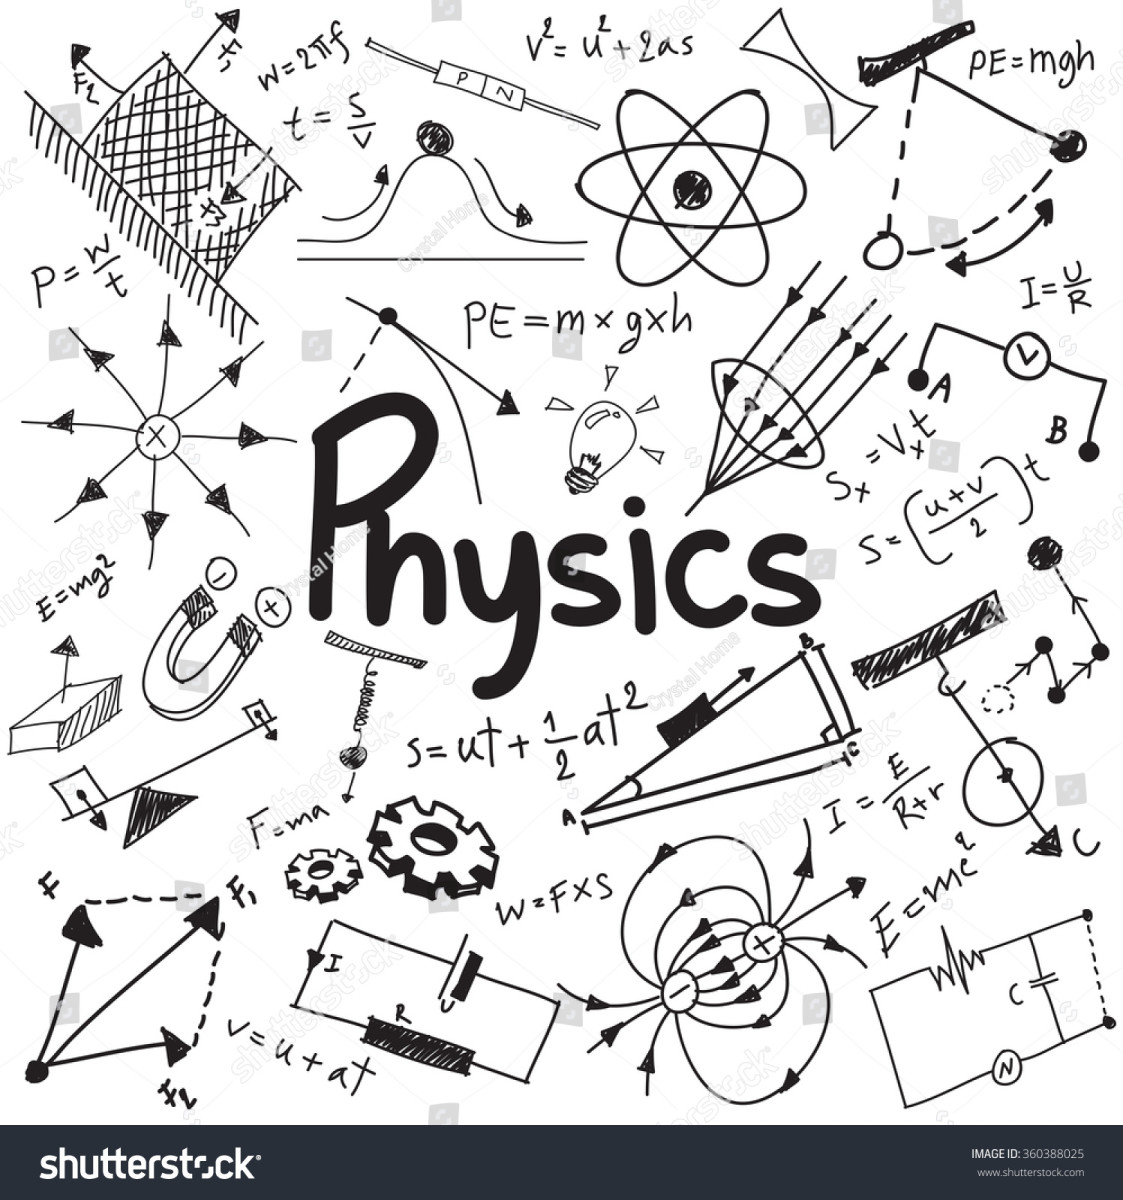 basic-physics-lesson-8-force-and-energy